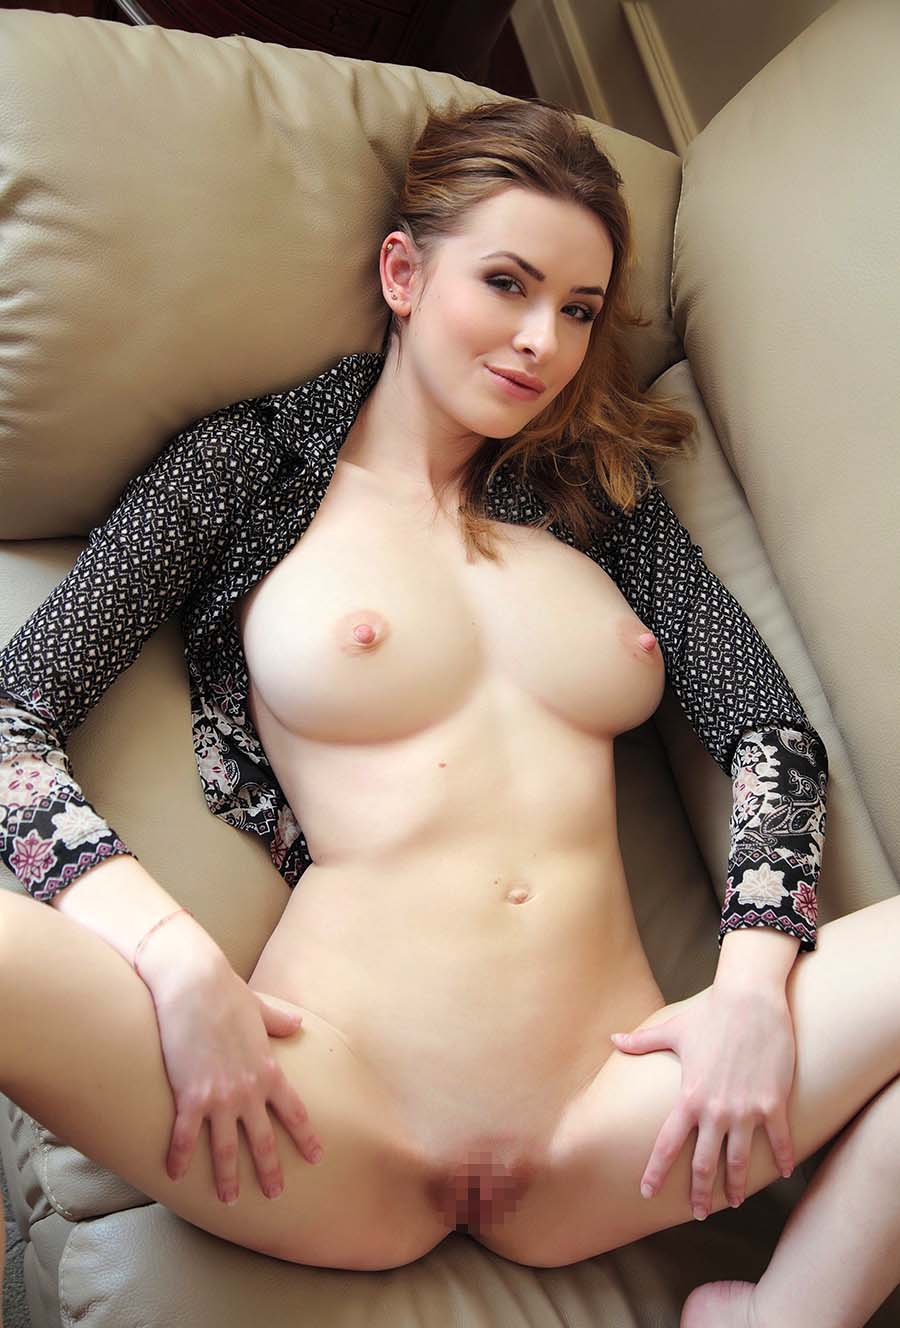 flashing tits and pussy to men